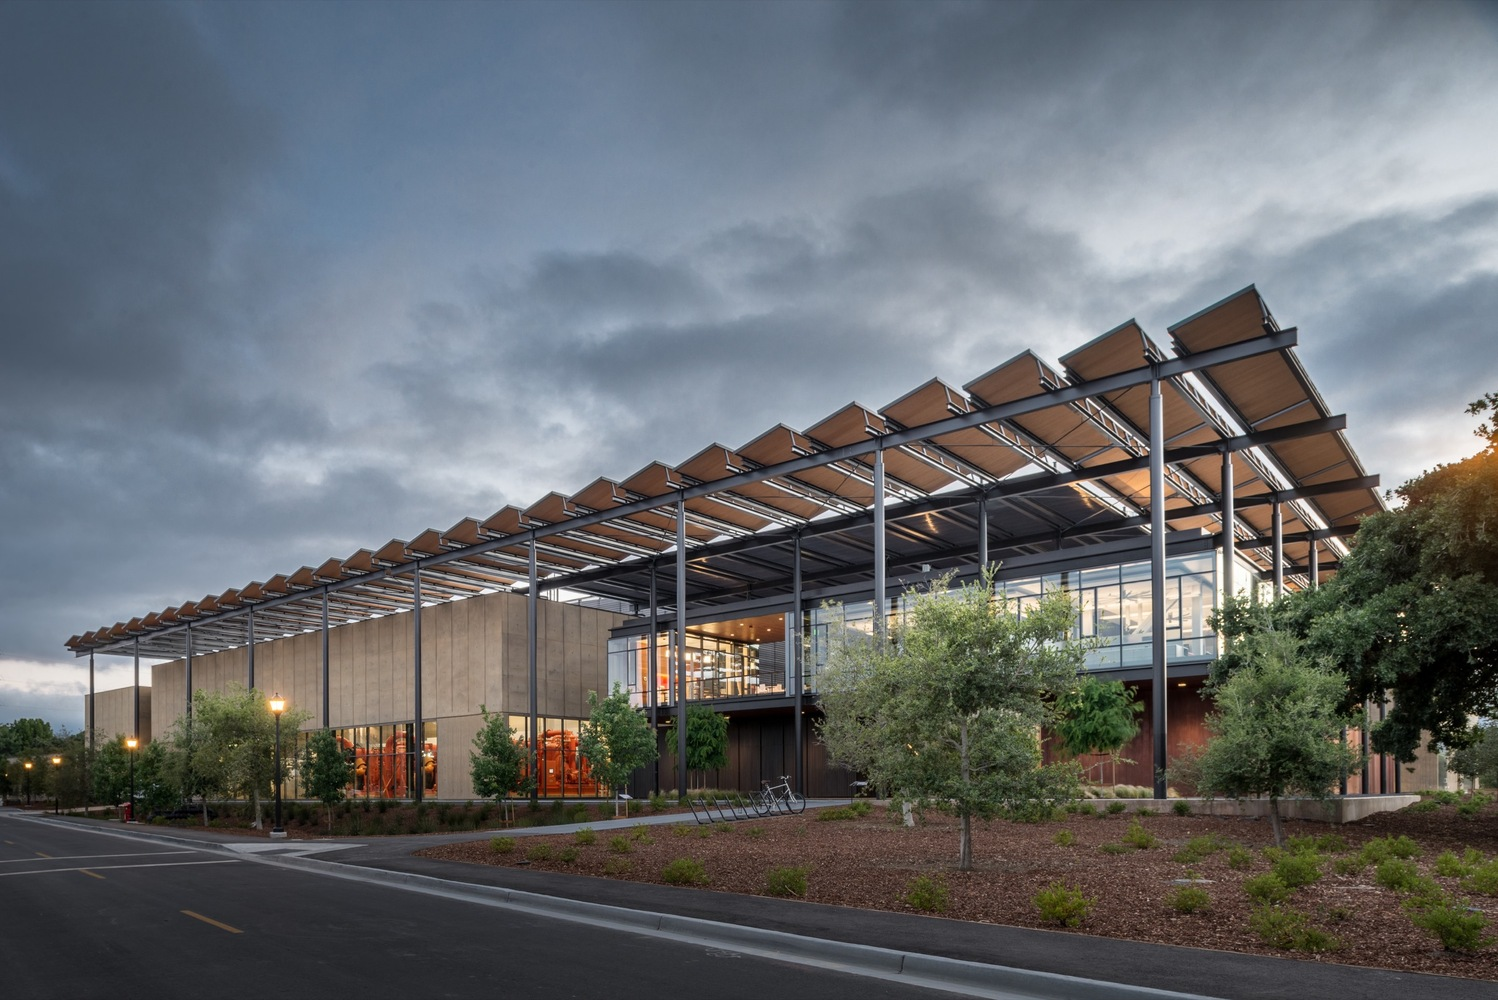 Stanford University Central Energy Facility (Stanford, California – USA)